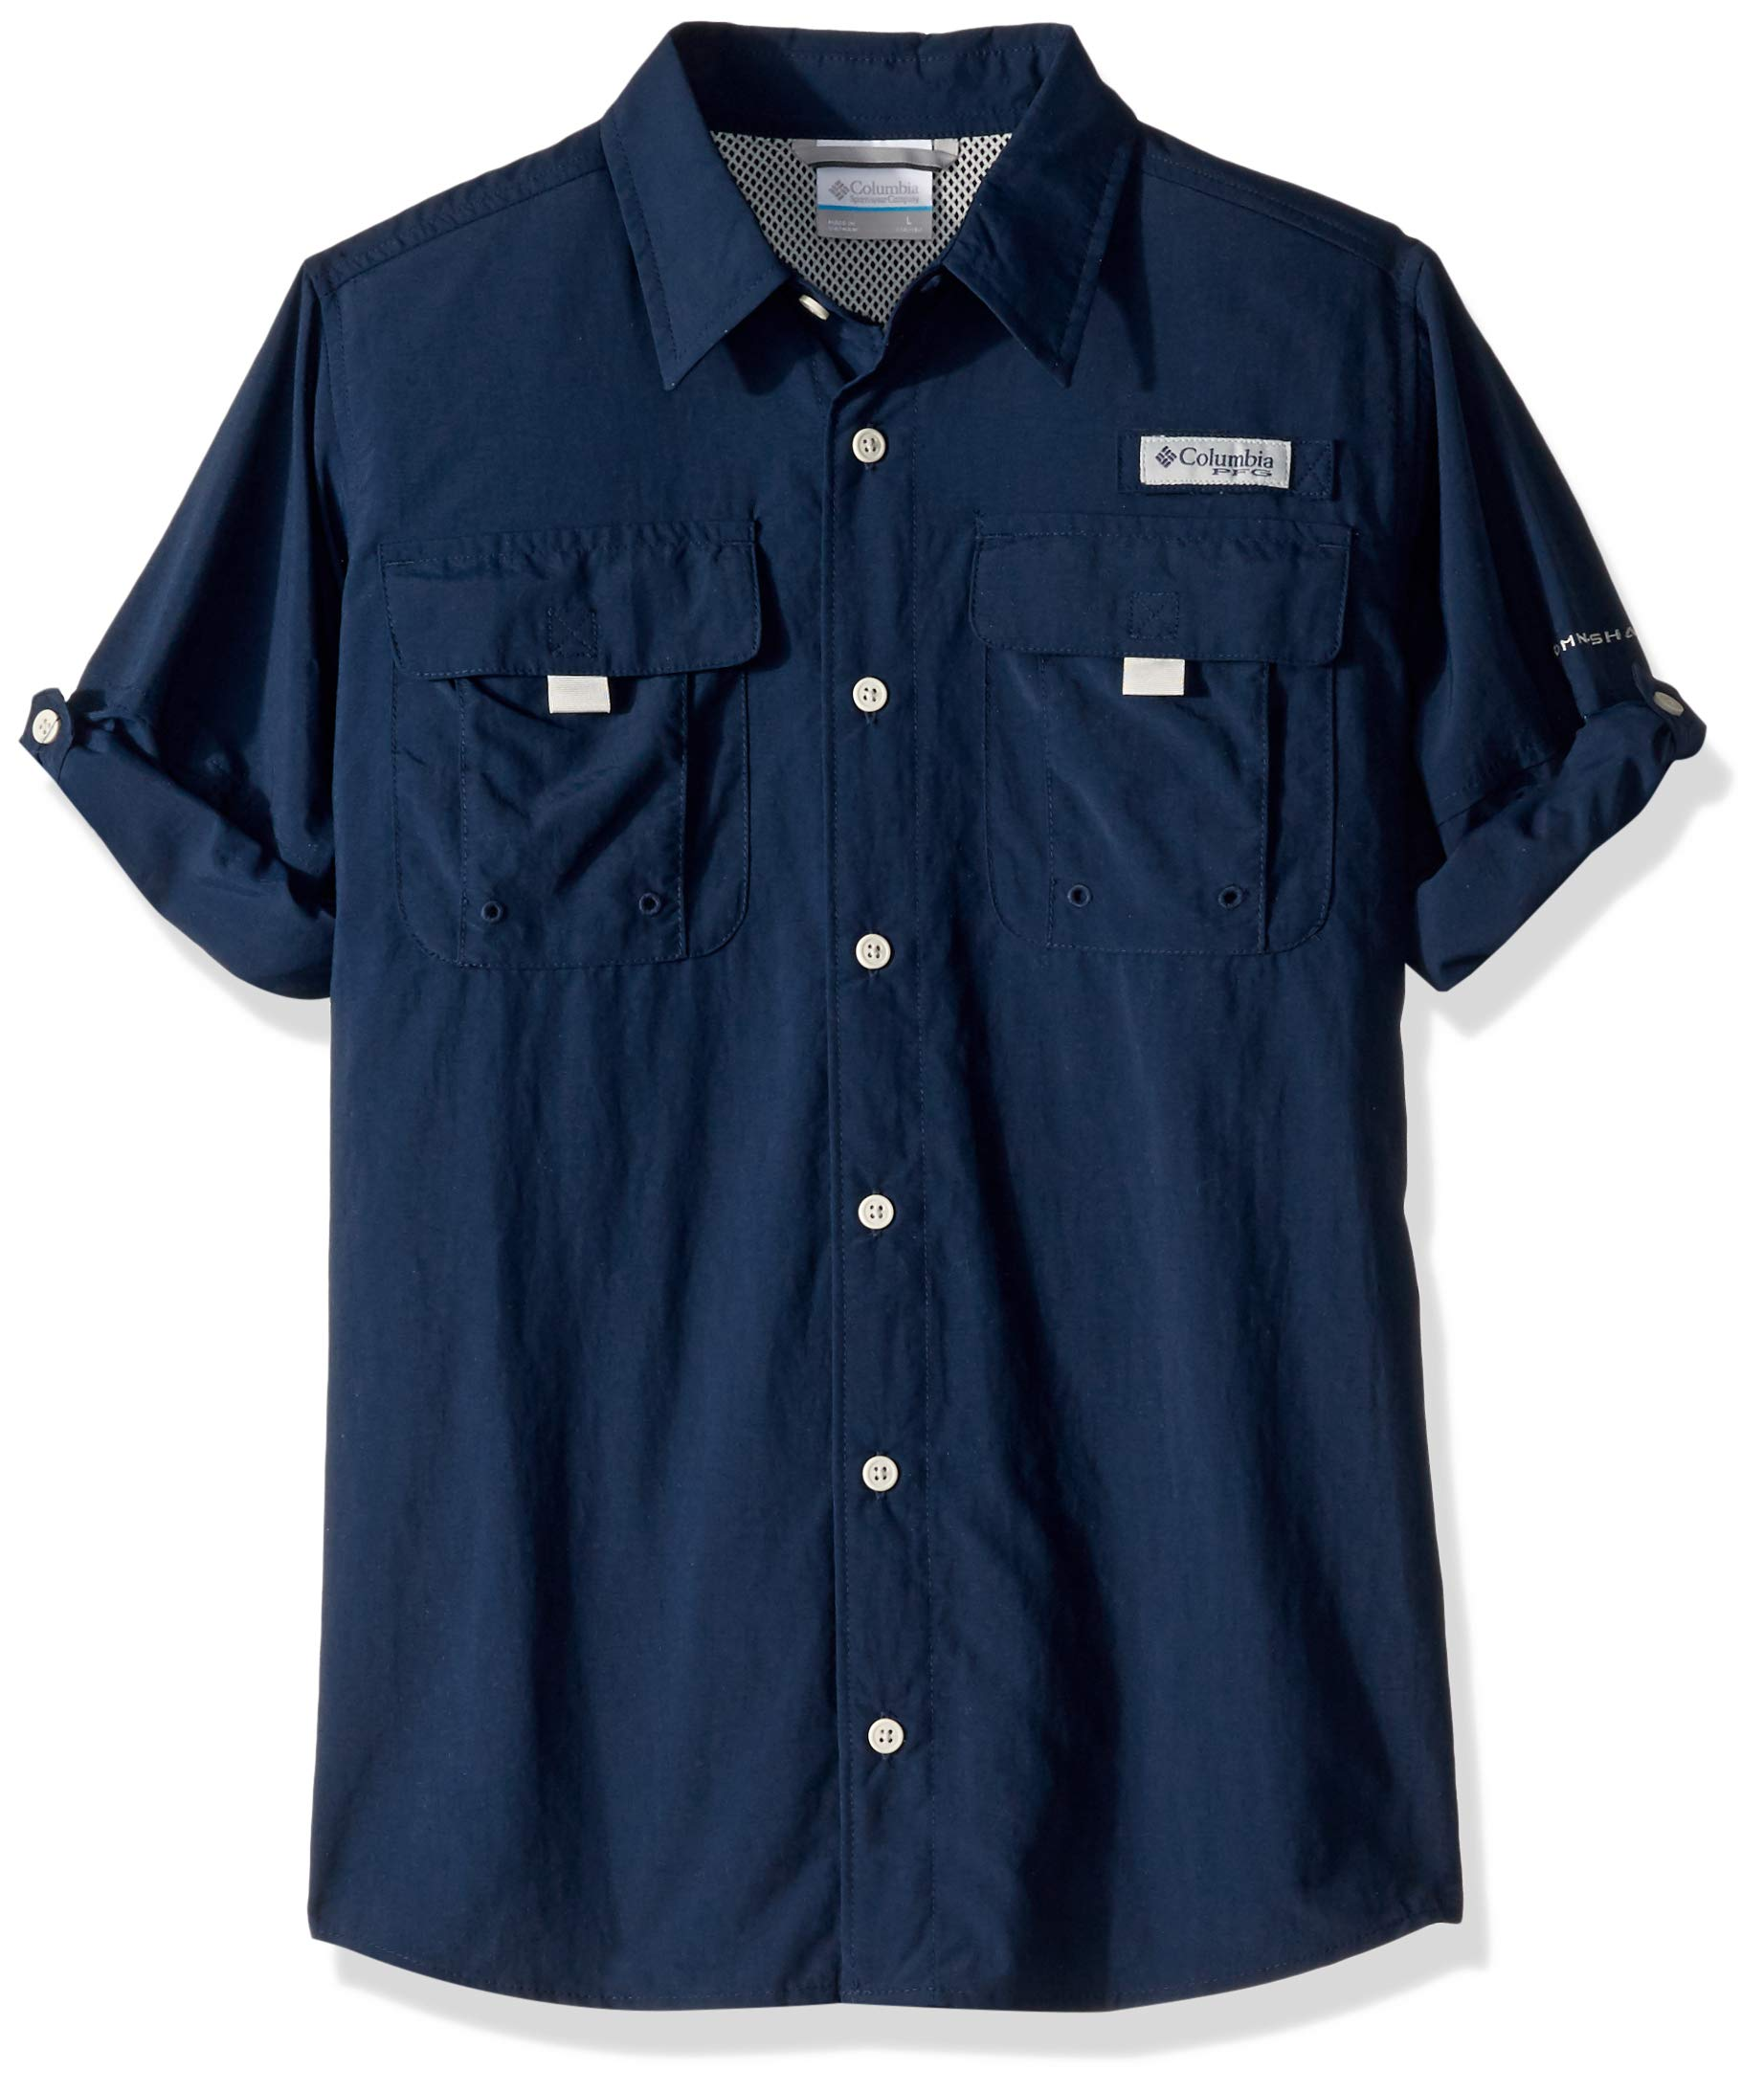 Columbia Boys PFG Bahama Long Sleeve Shirt, Collegiate Navy, Medium by Columbia (Image #1)